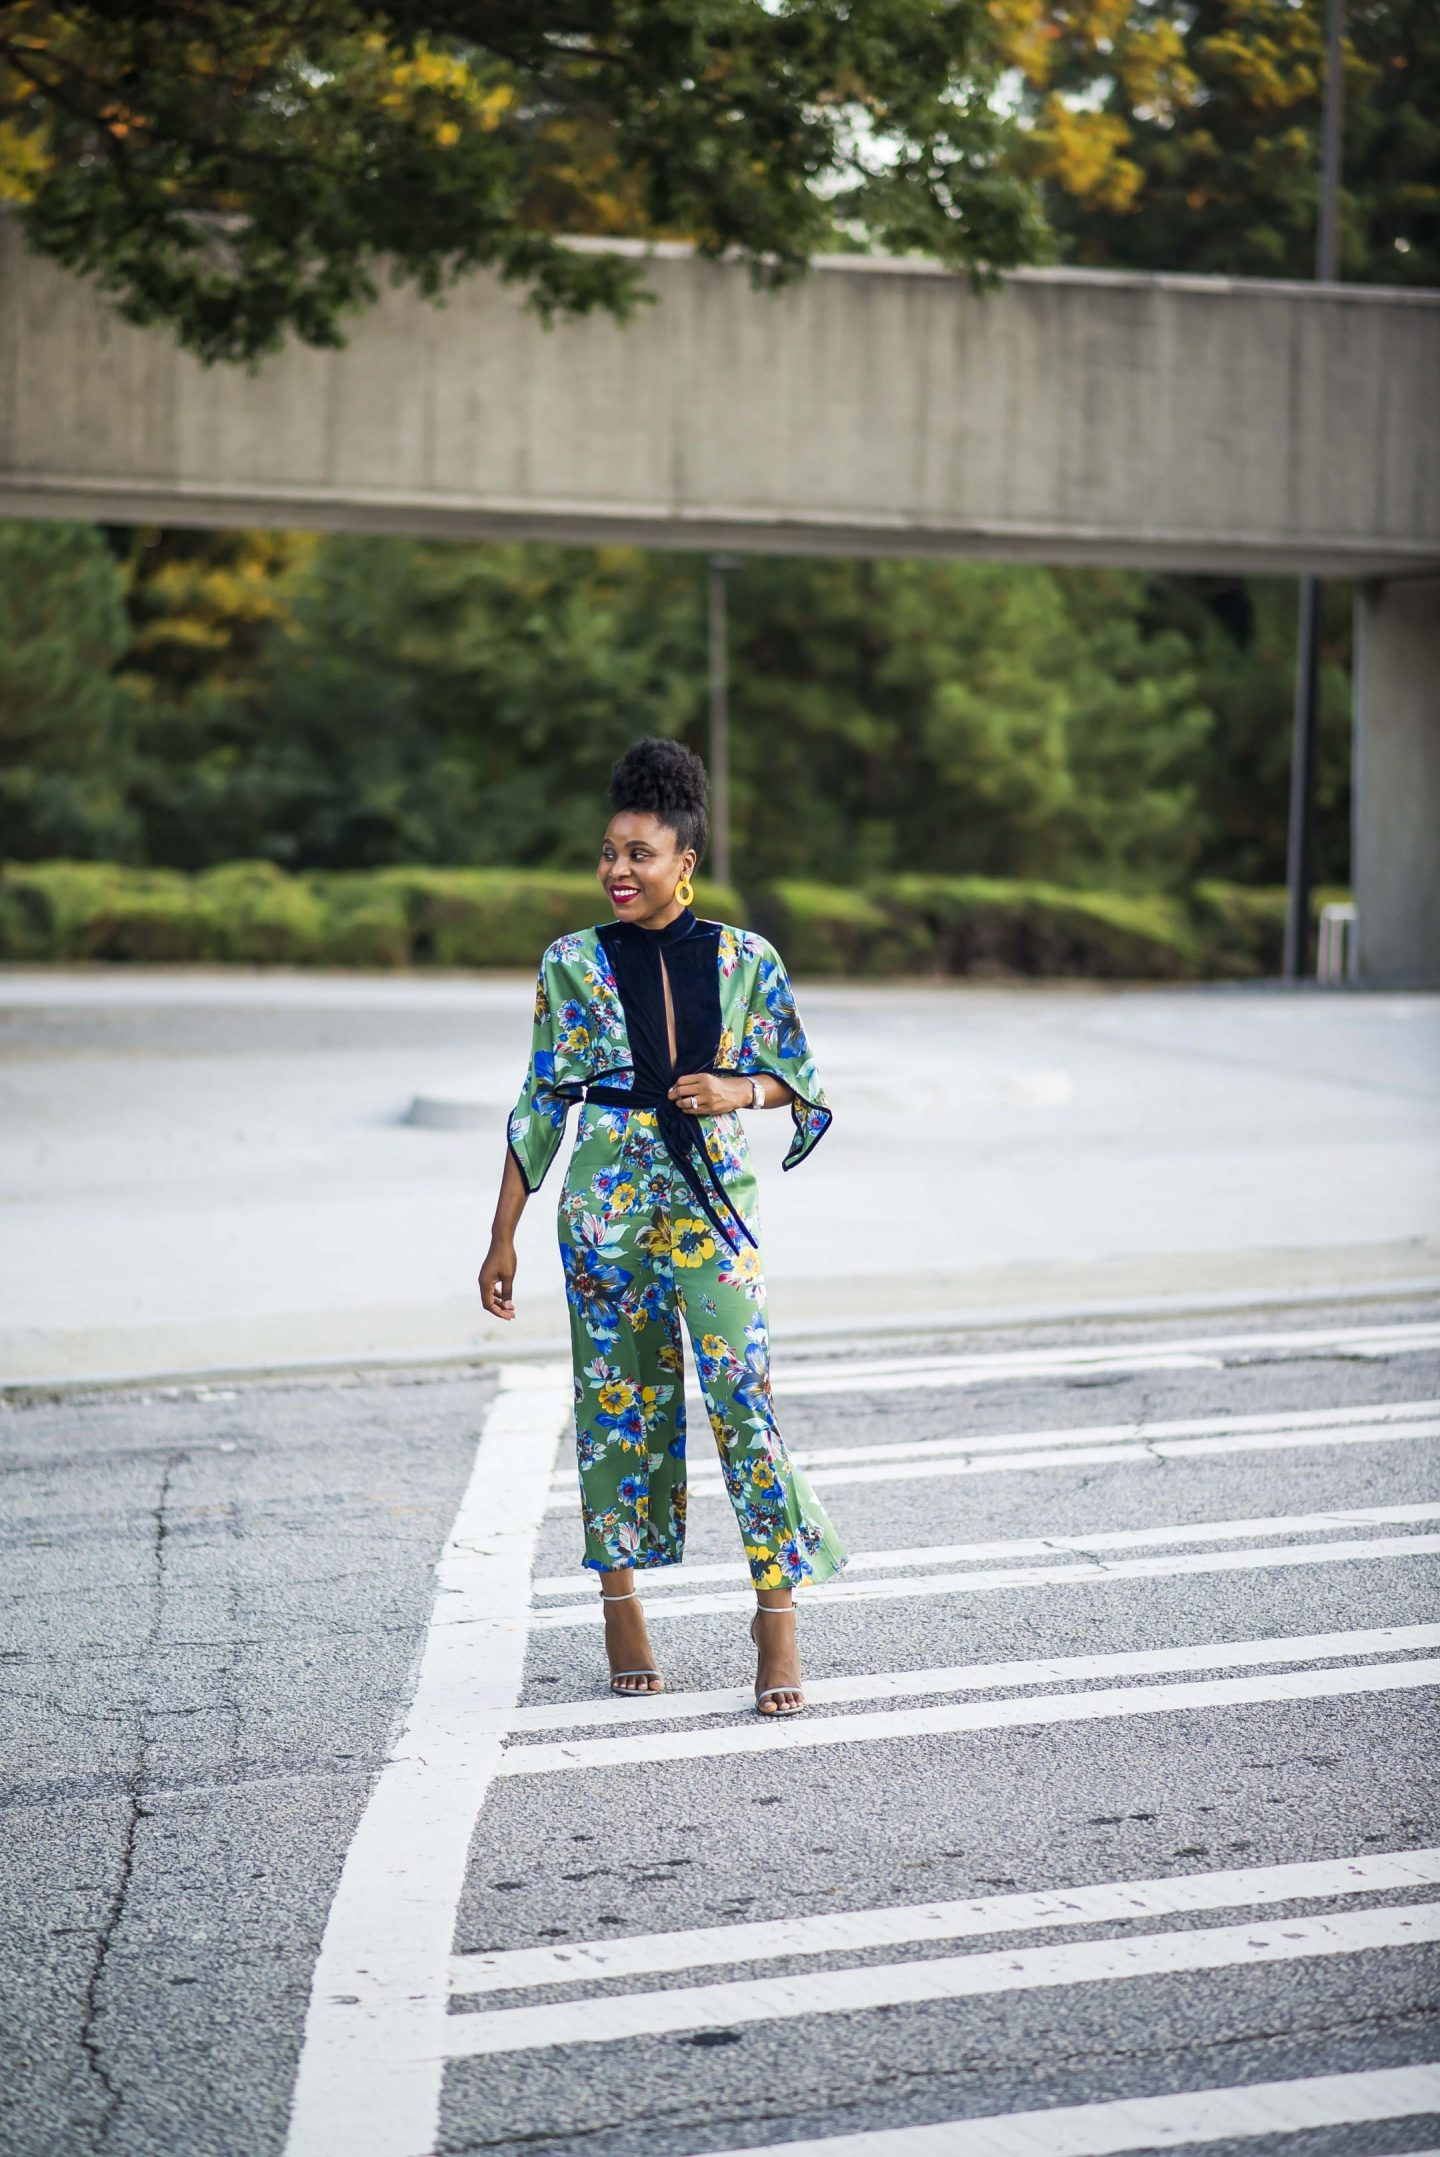 Fall Check List: Fabulous Jumpsuit